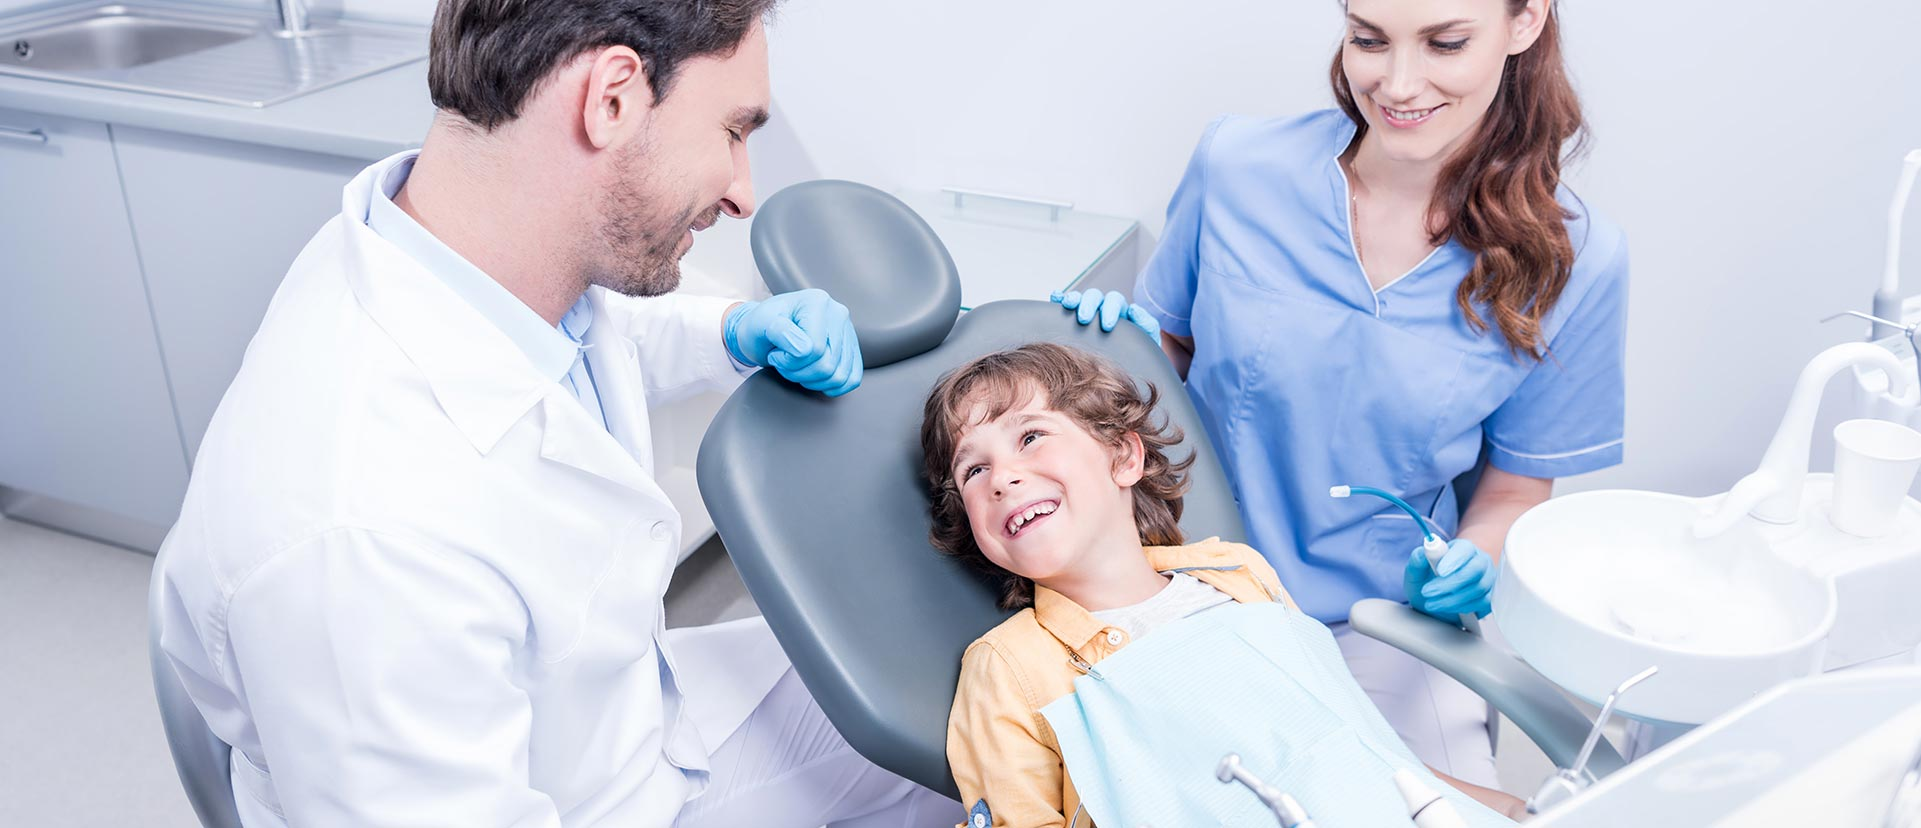 A child is smiling at the dental care